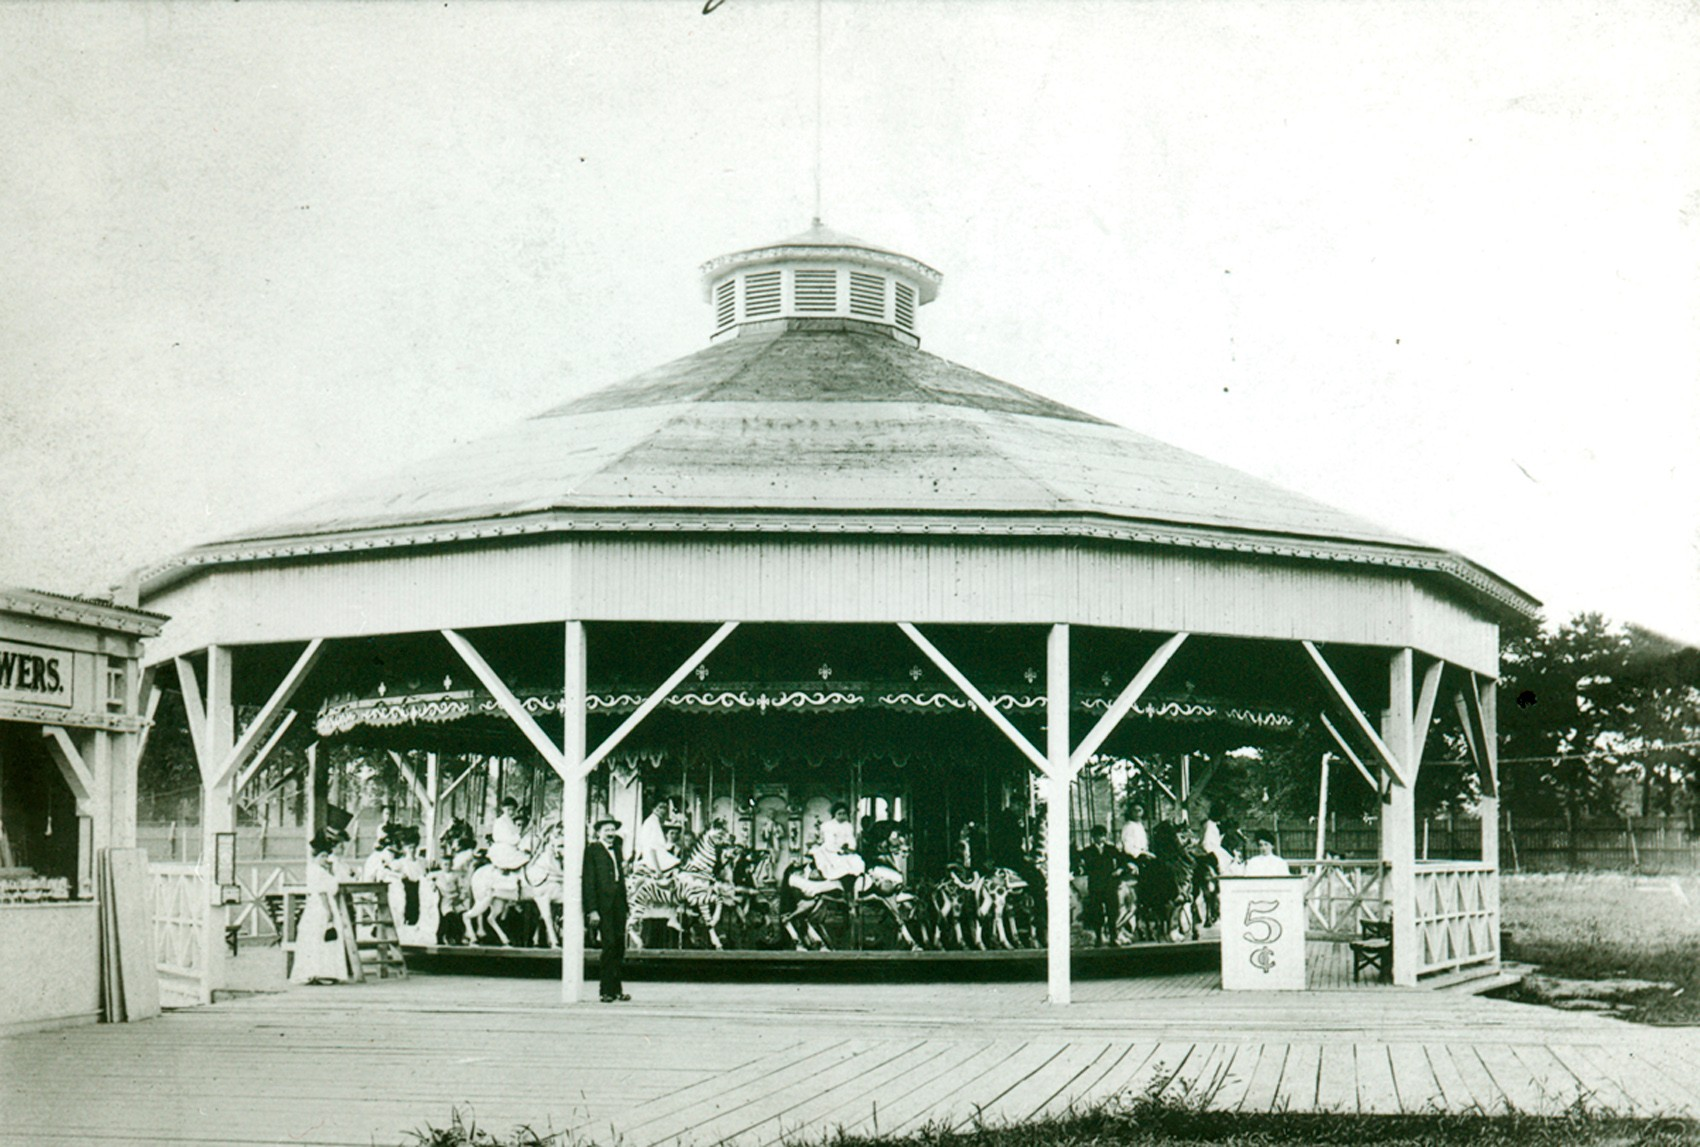 Historic-PTC-13-carousel-Luna-Park-Harford-CT